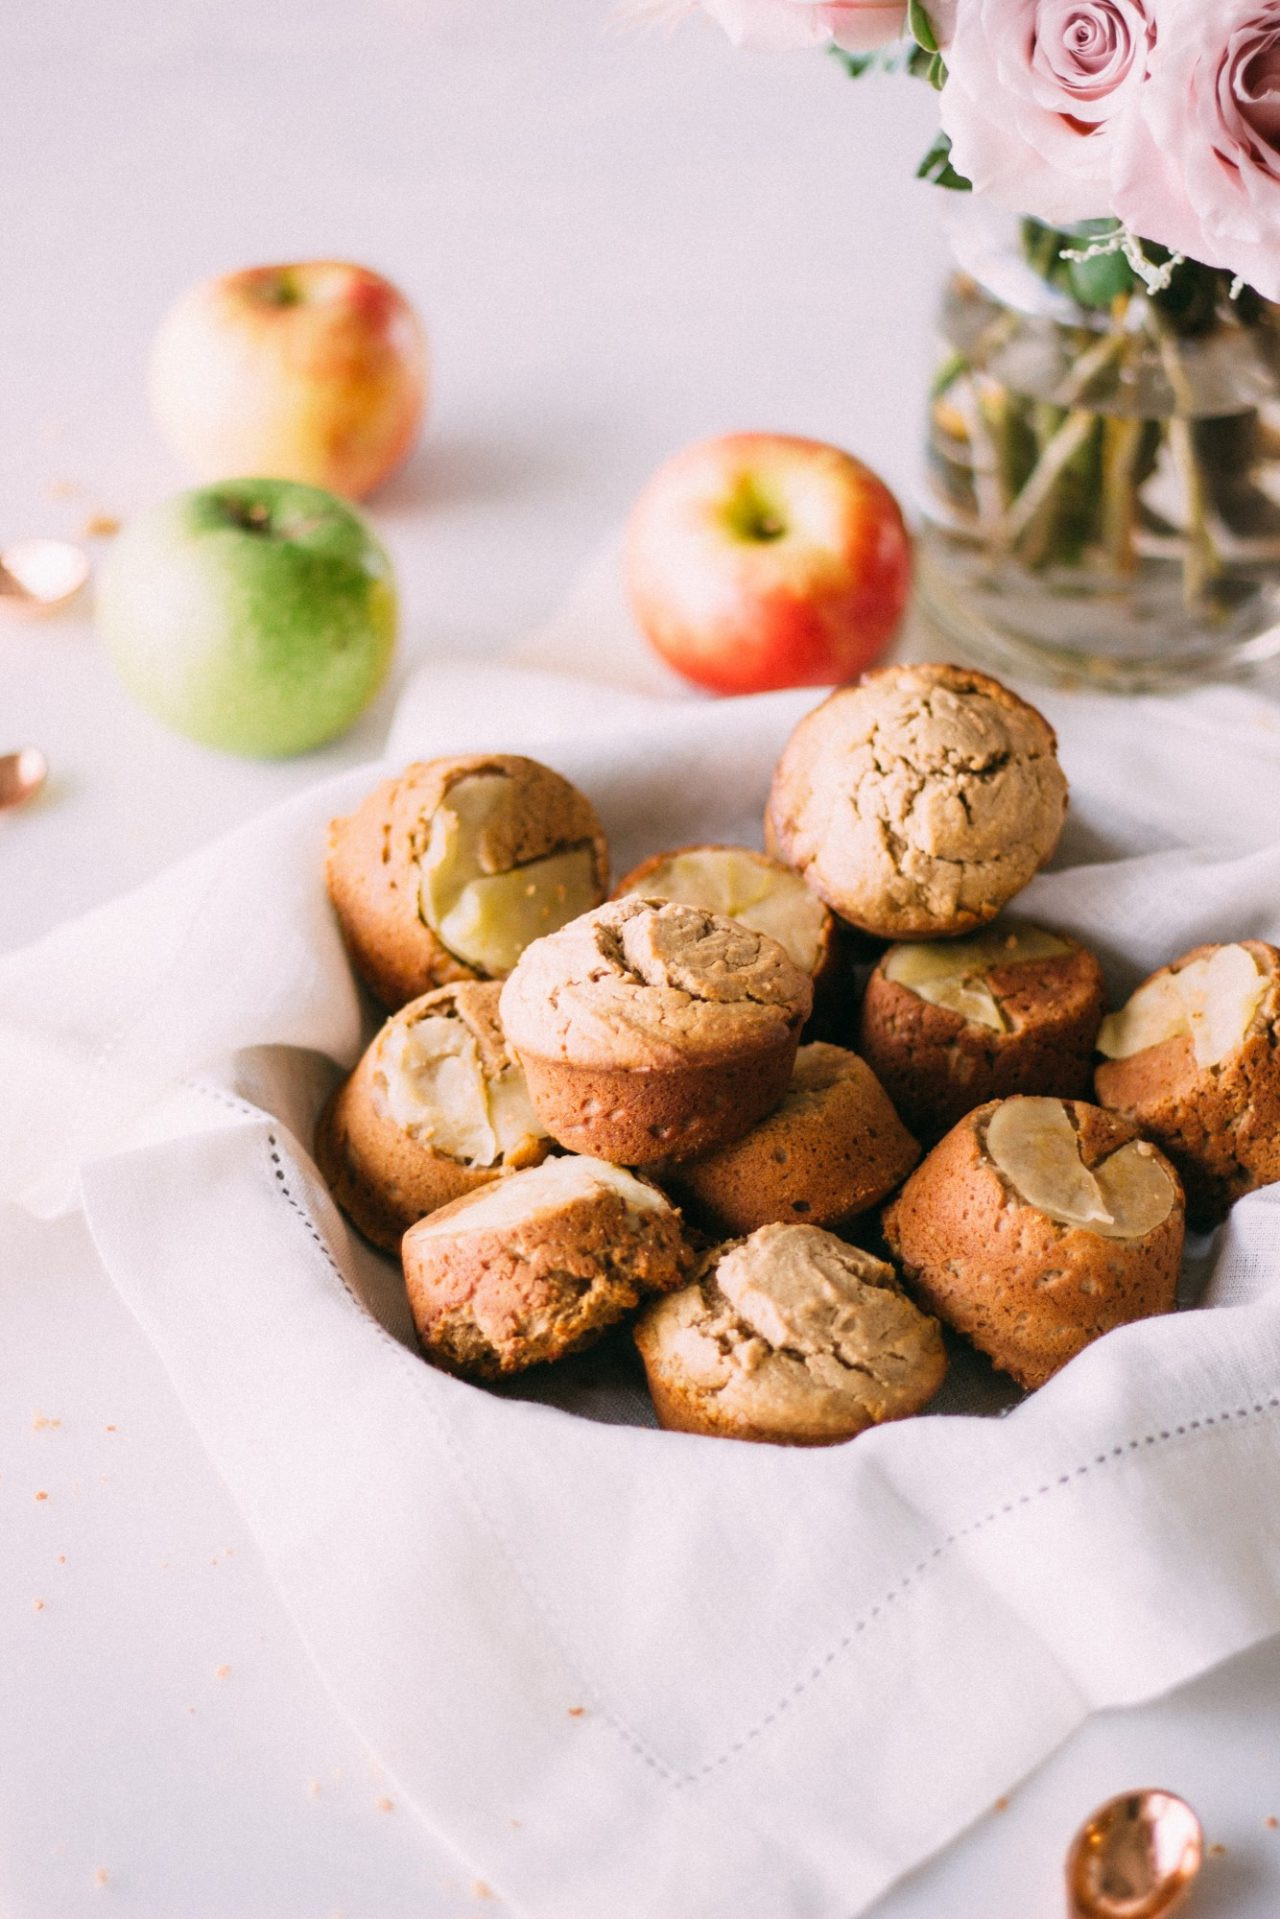 Healthy Thanksgiving Desserts  Healthy Thanksgiving Desserts Cupcakes Crisps and Pie